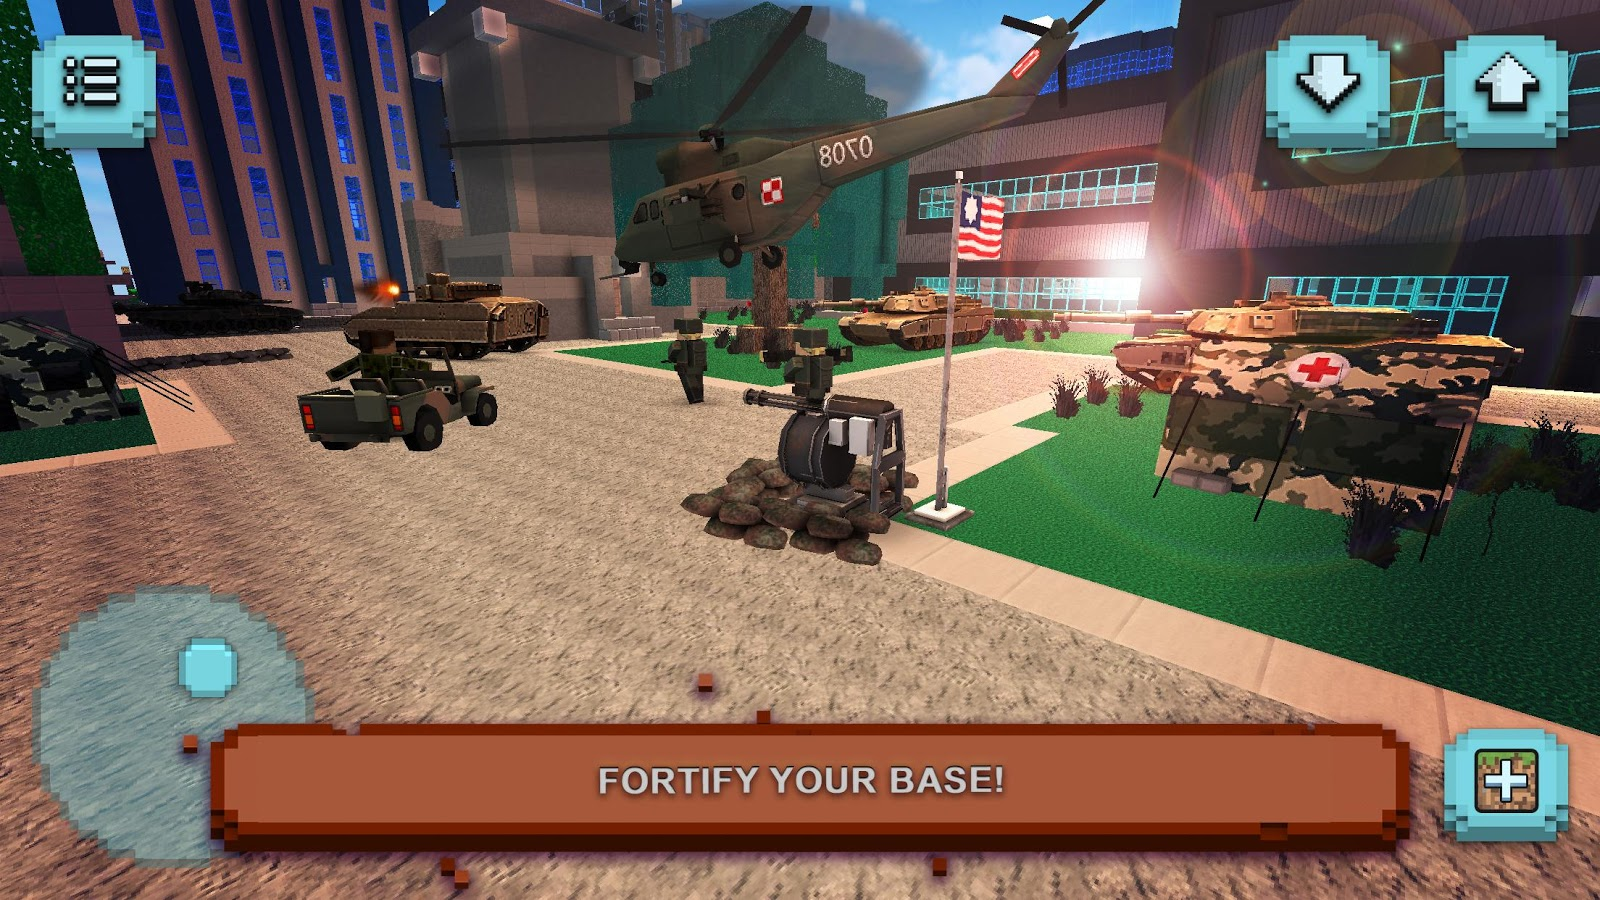 Gunship craft crafting helicopter flying games for Crafting and building app store